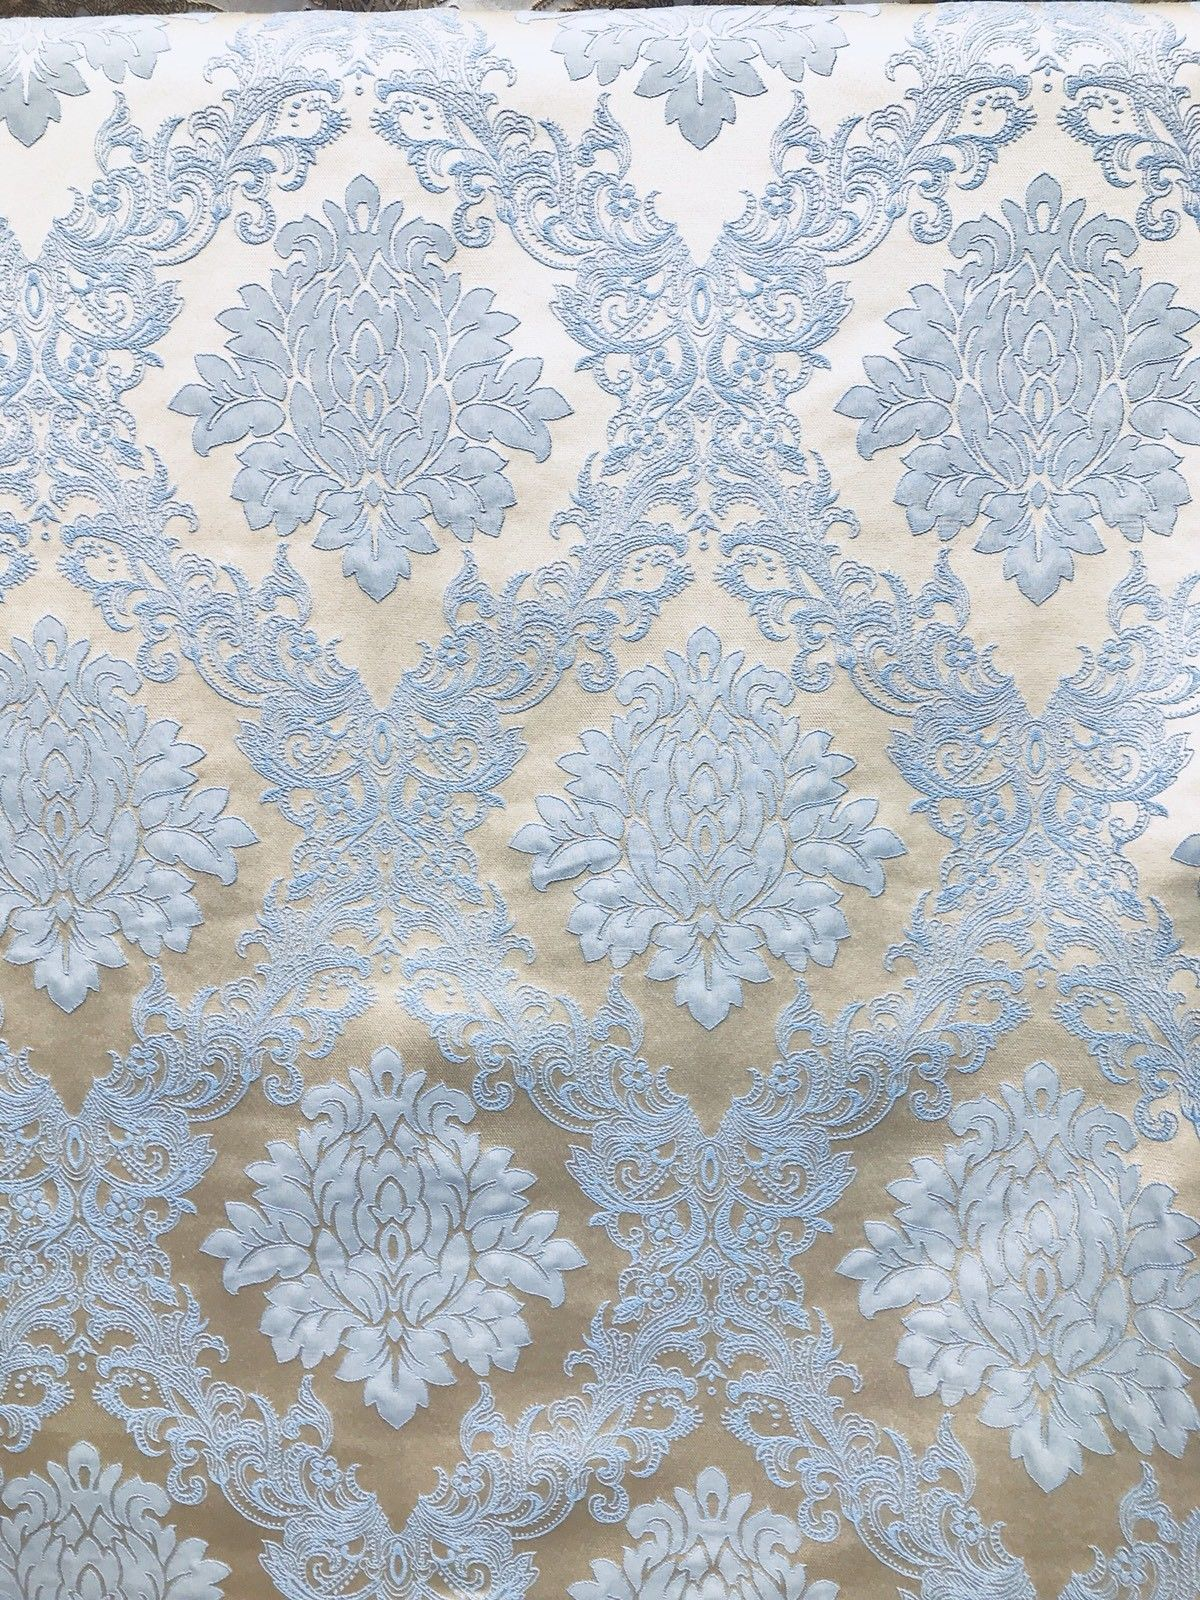 SWATCH Designer Brocade Damask Upholstery Decorating Fabric- Powder Blue - Fancy Styles Fabric Boutique